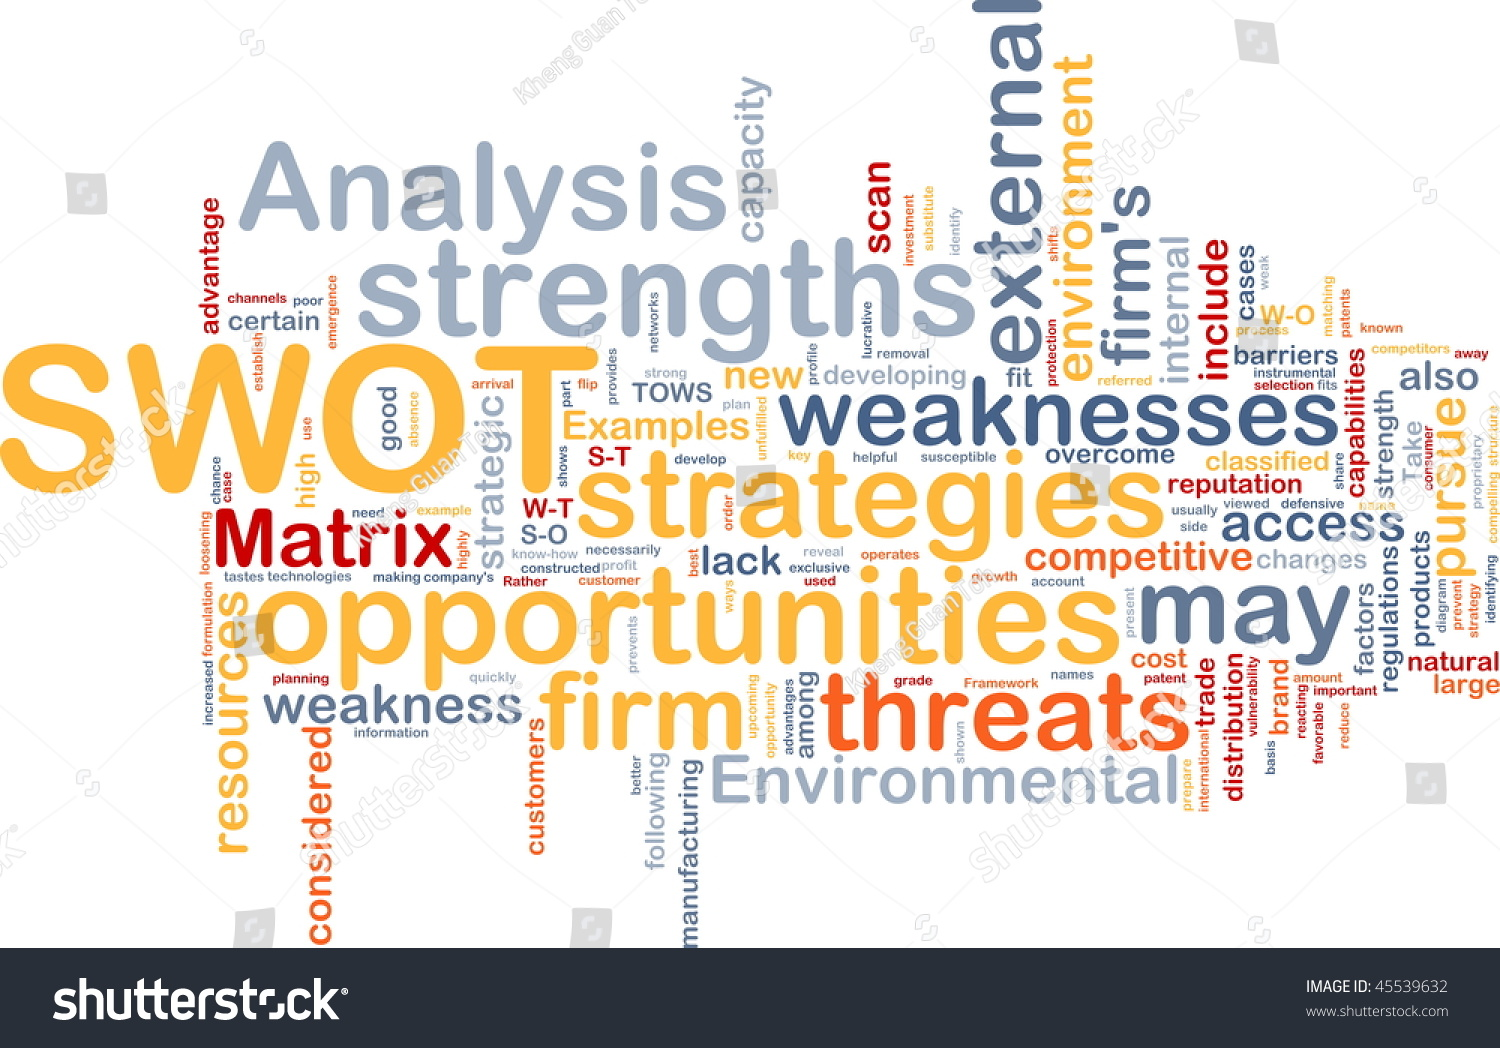 the background and concept of swot analysis Swot analysis template found in: swot analysis this ppt icon slide contains the concept of swot analysis content of slide background easily.